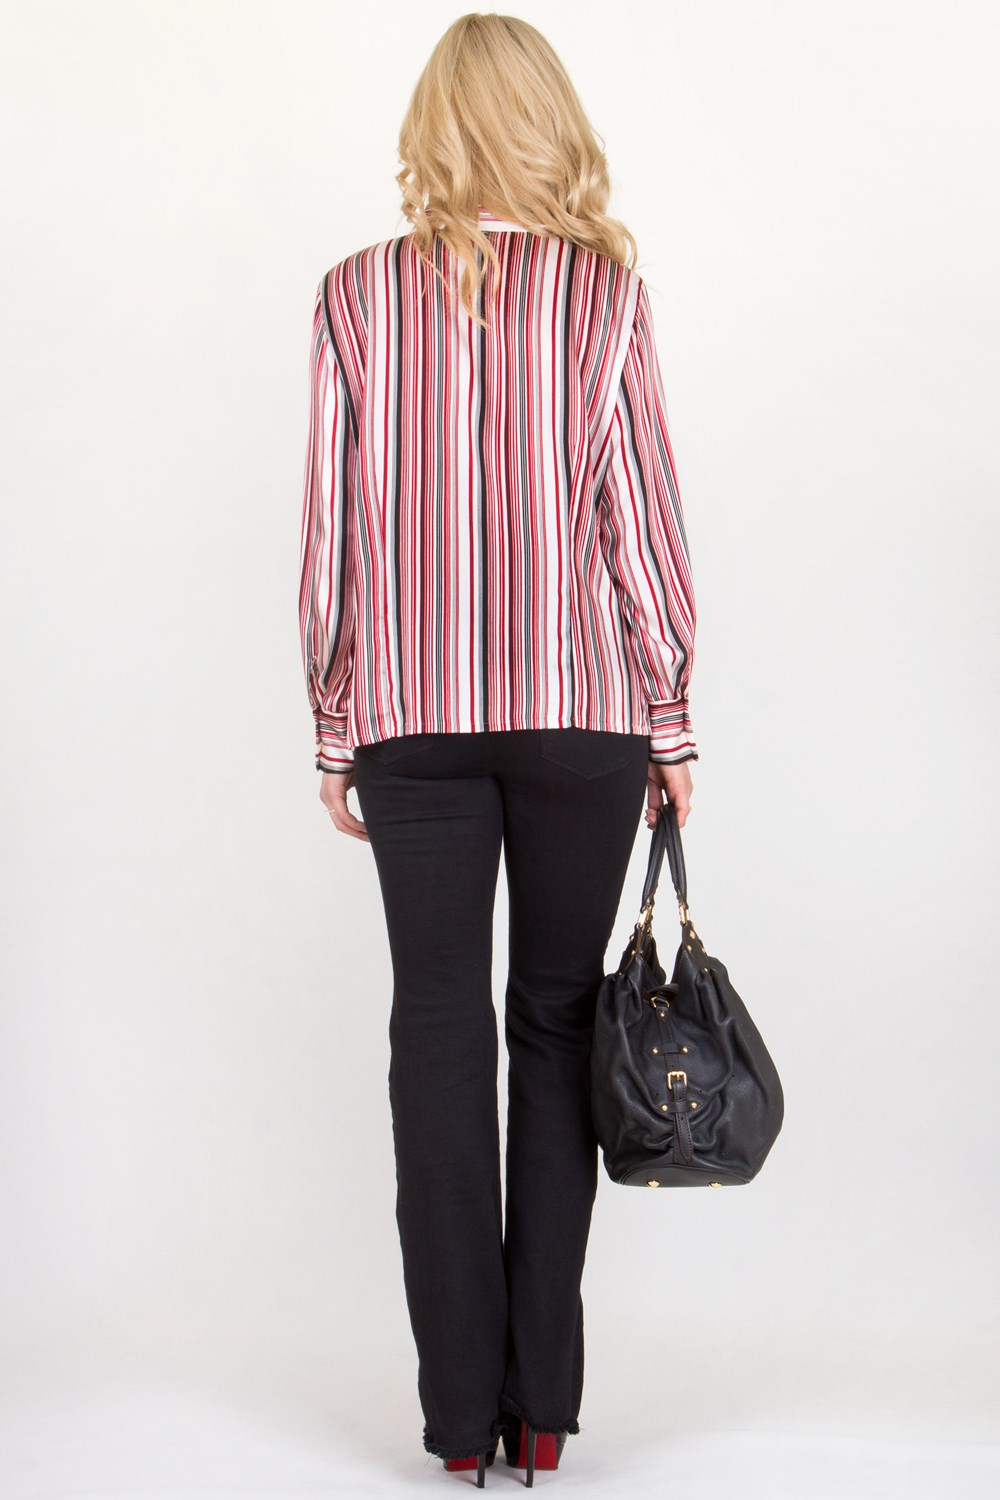 Satin-Like Shirt with Red, Black and White Stripes / Size: 44 FR ...